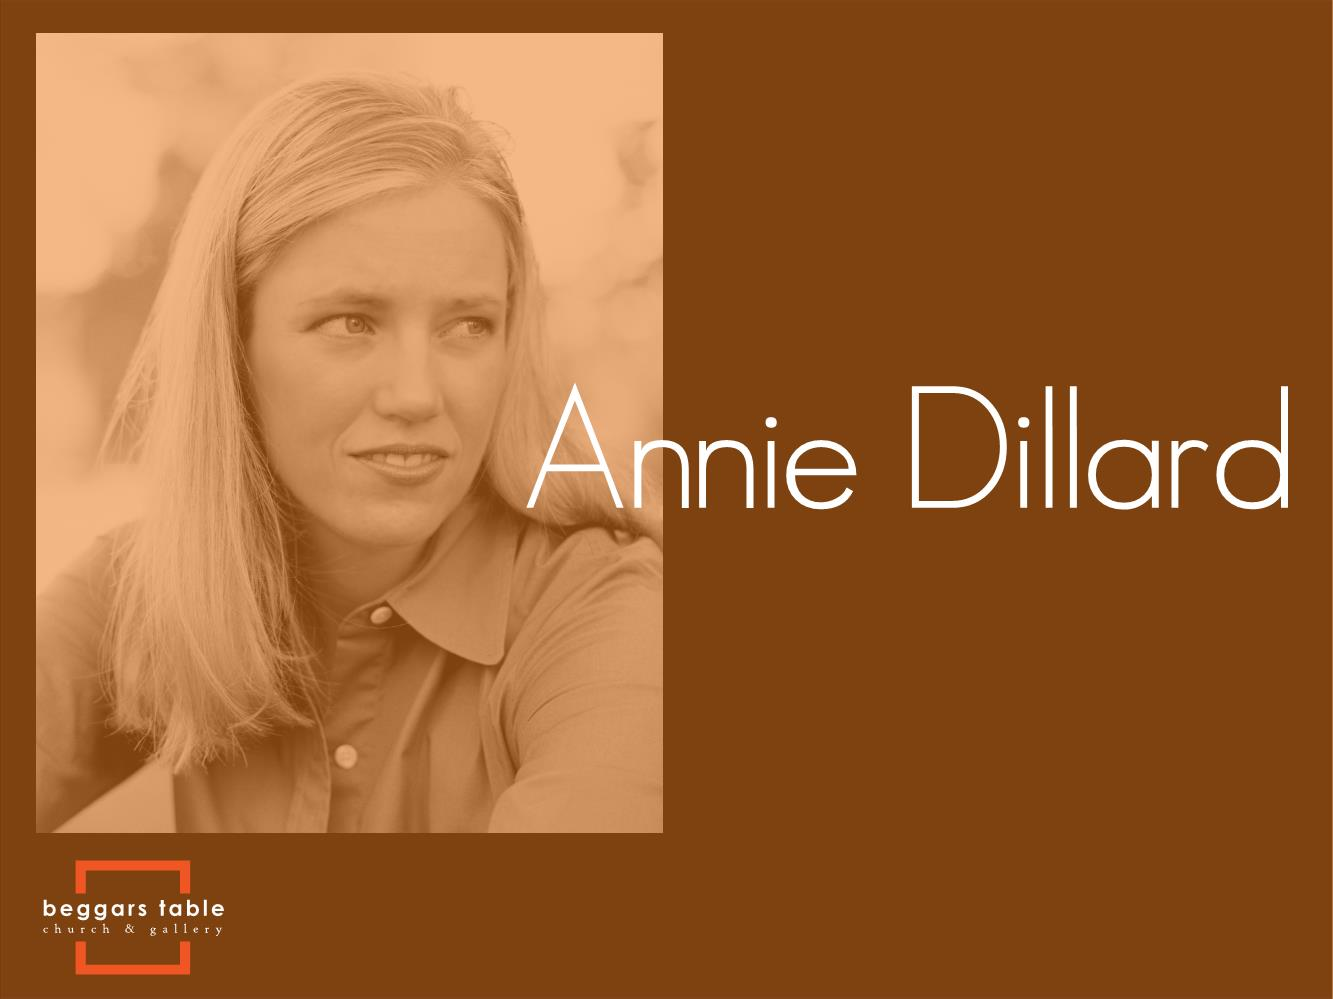 BT Influence - Annie Dillard